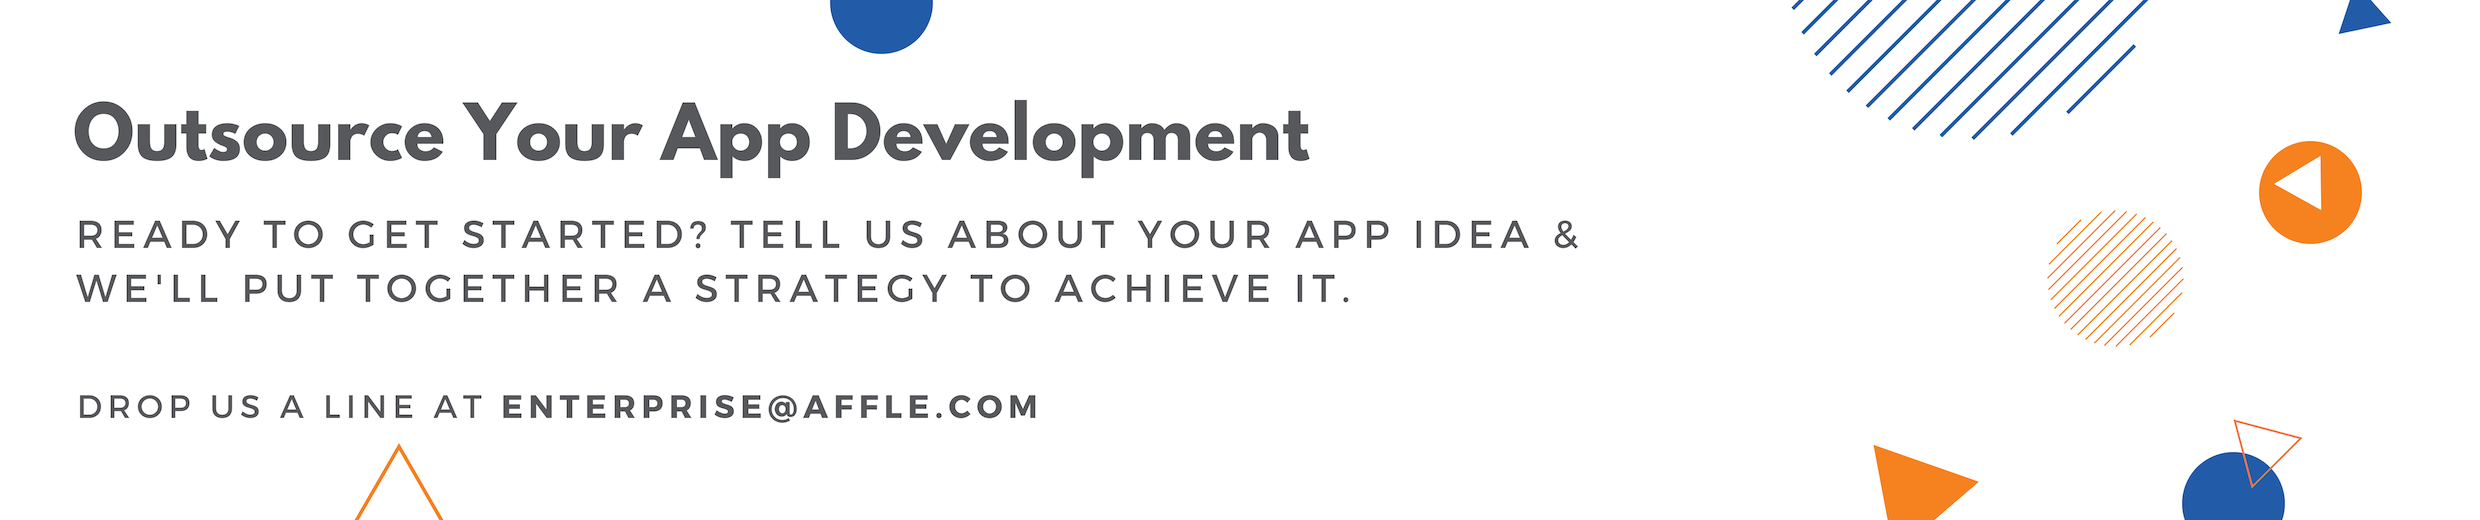 Outsource your app development